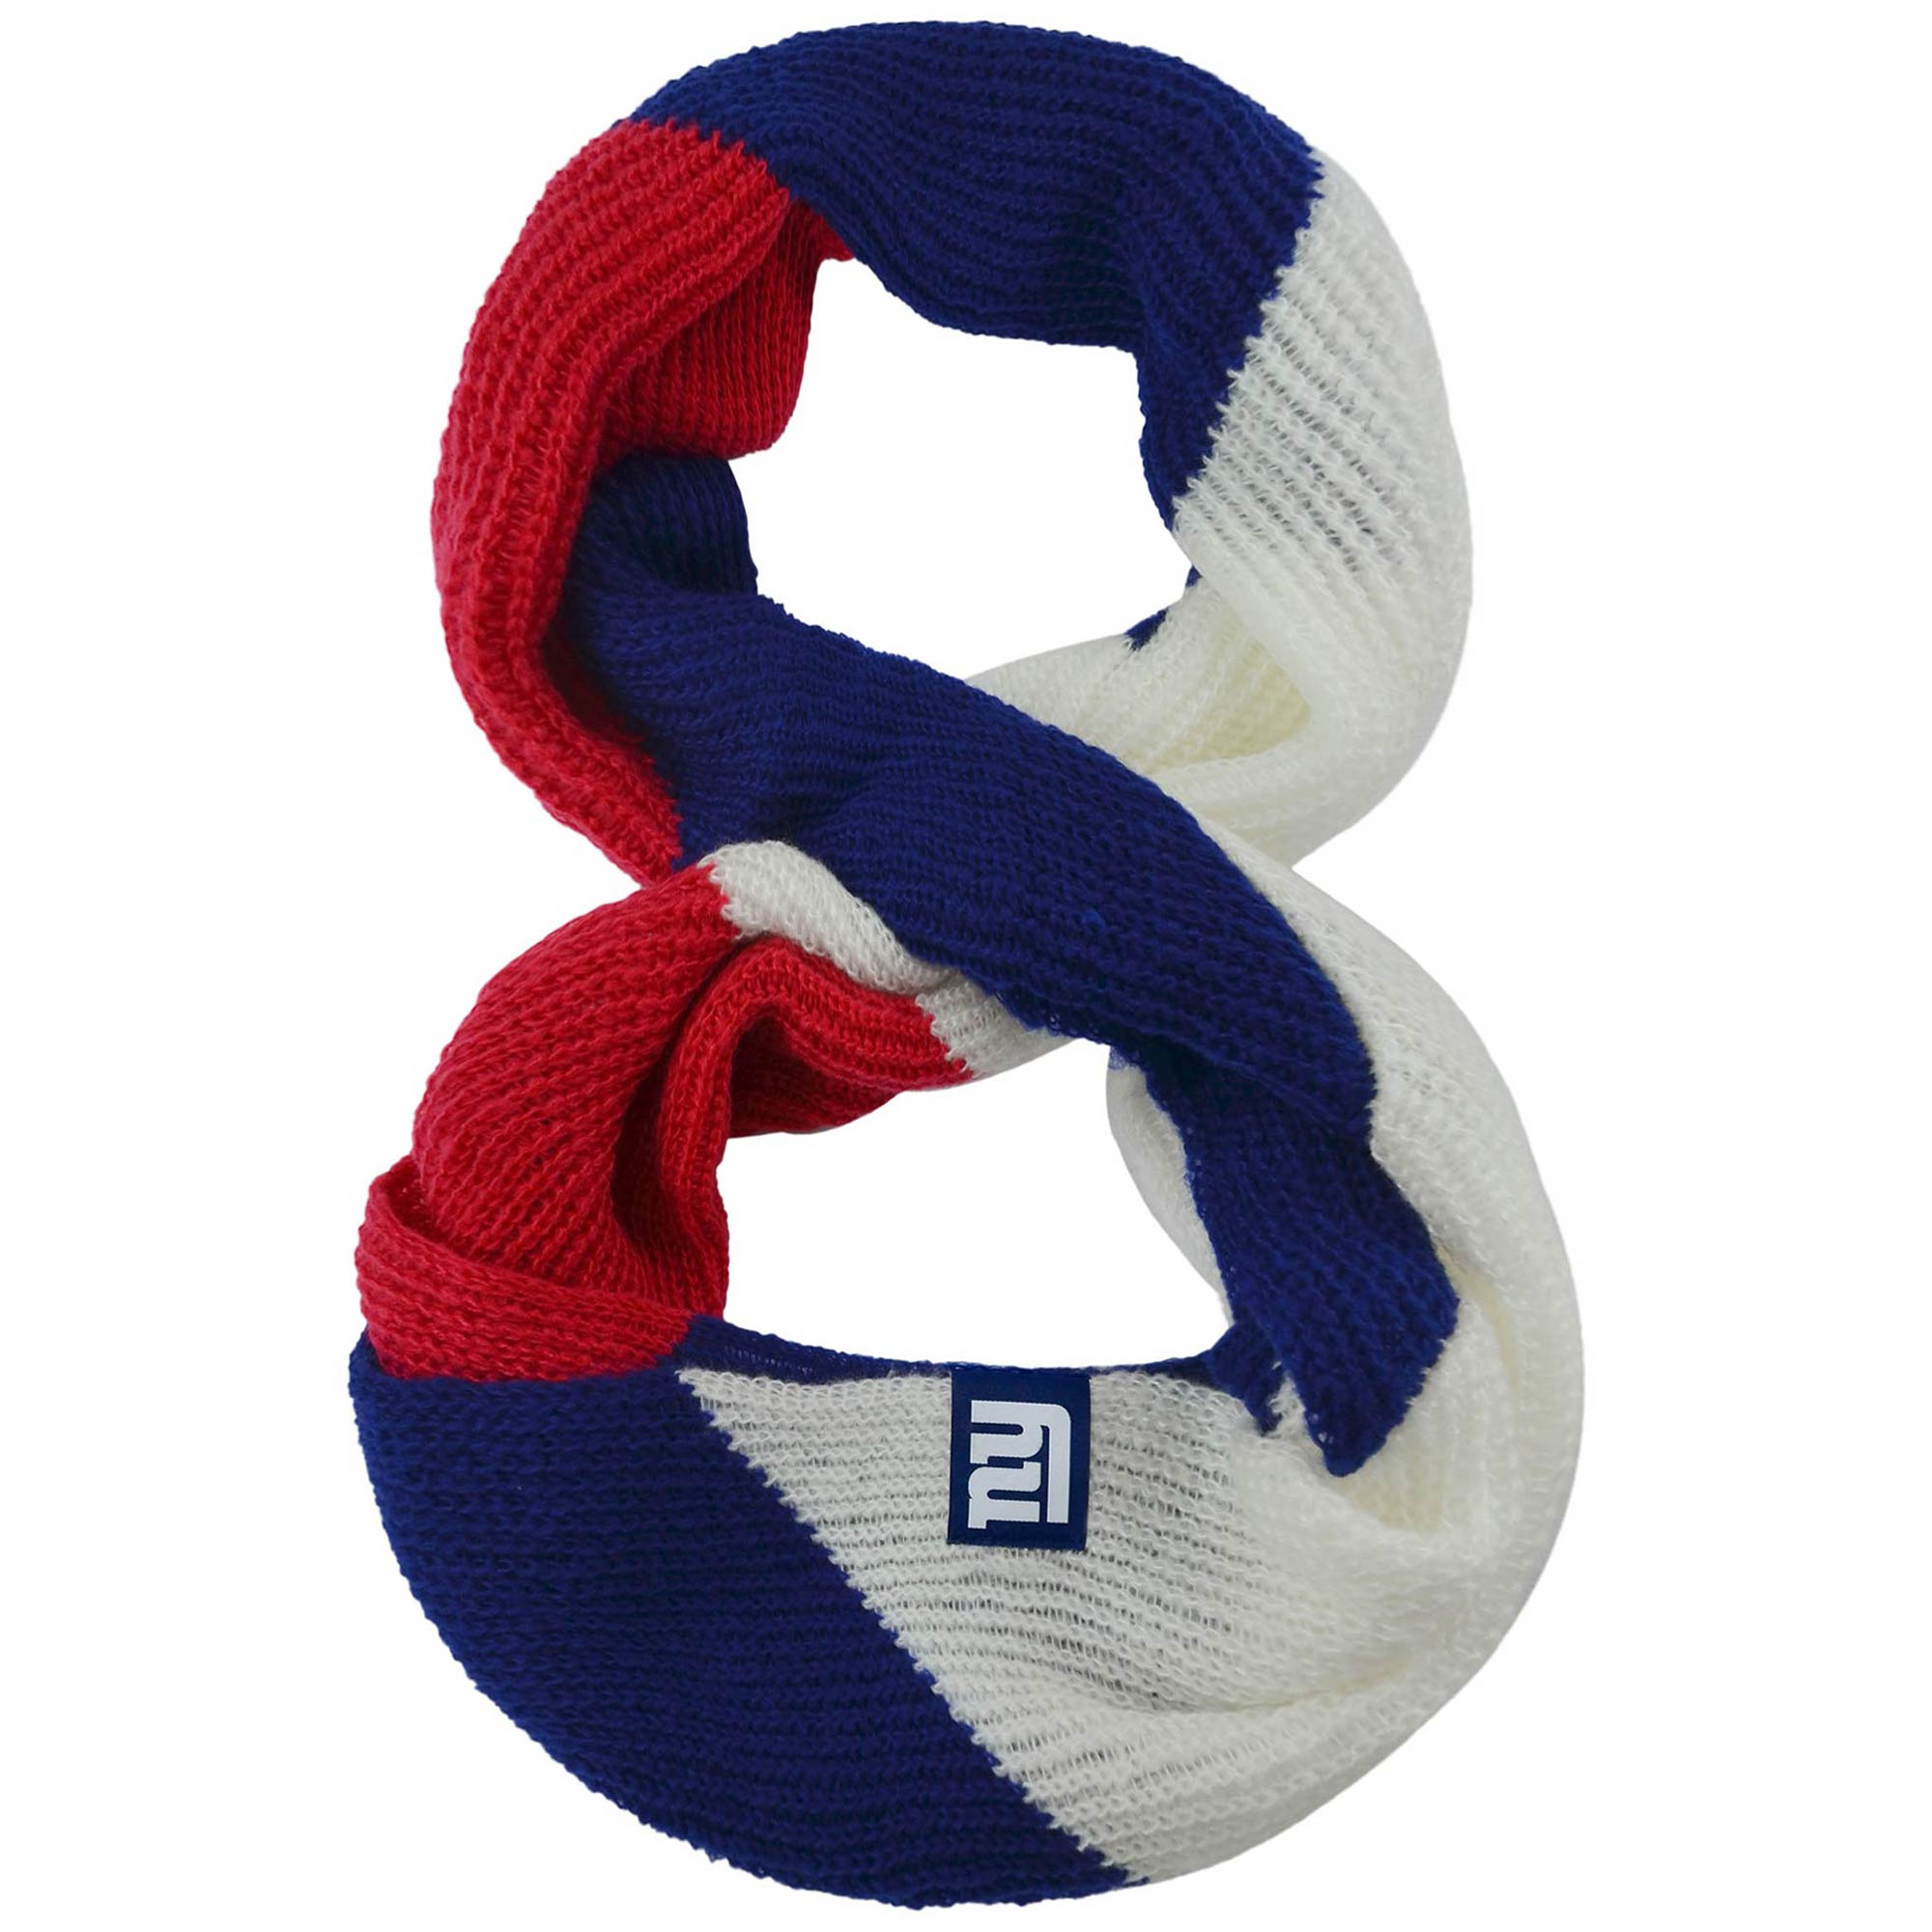 New York Giants Women's Color Block Knit Infinity Scarf